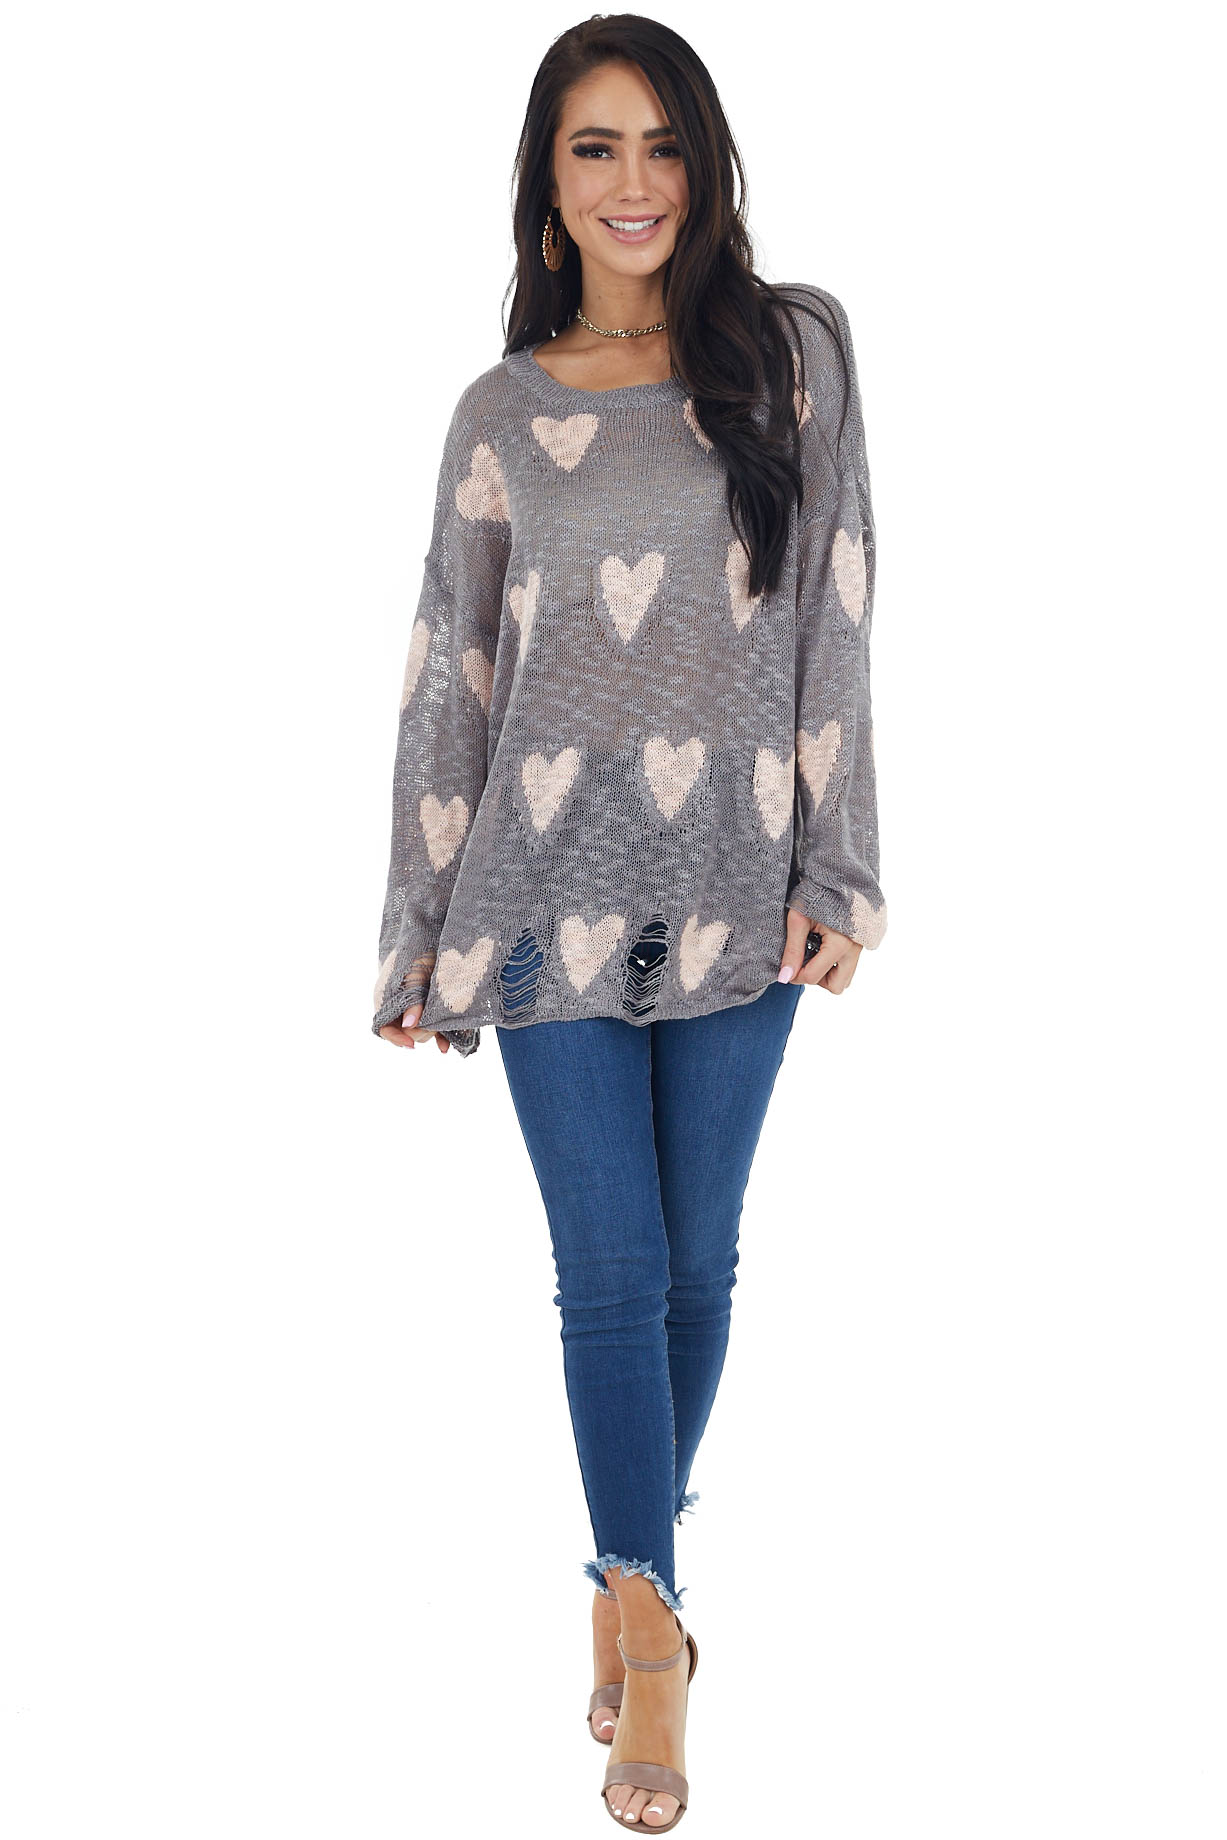 Grey and Blush Heart Distressed Long Sleeve Relaxed Fit Top